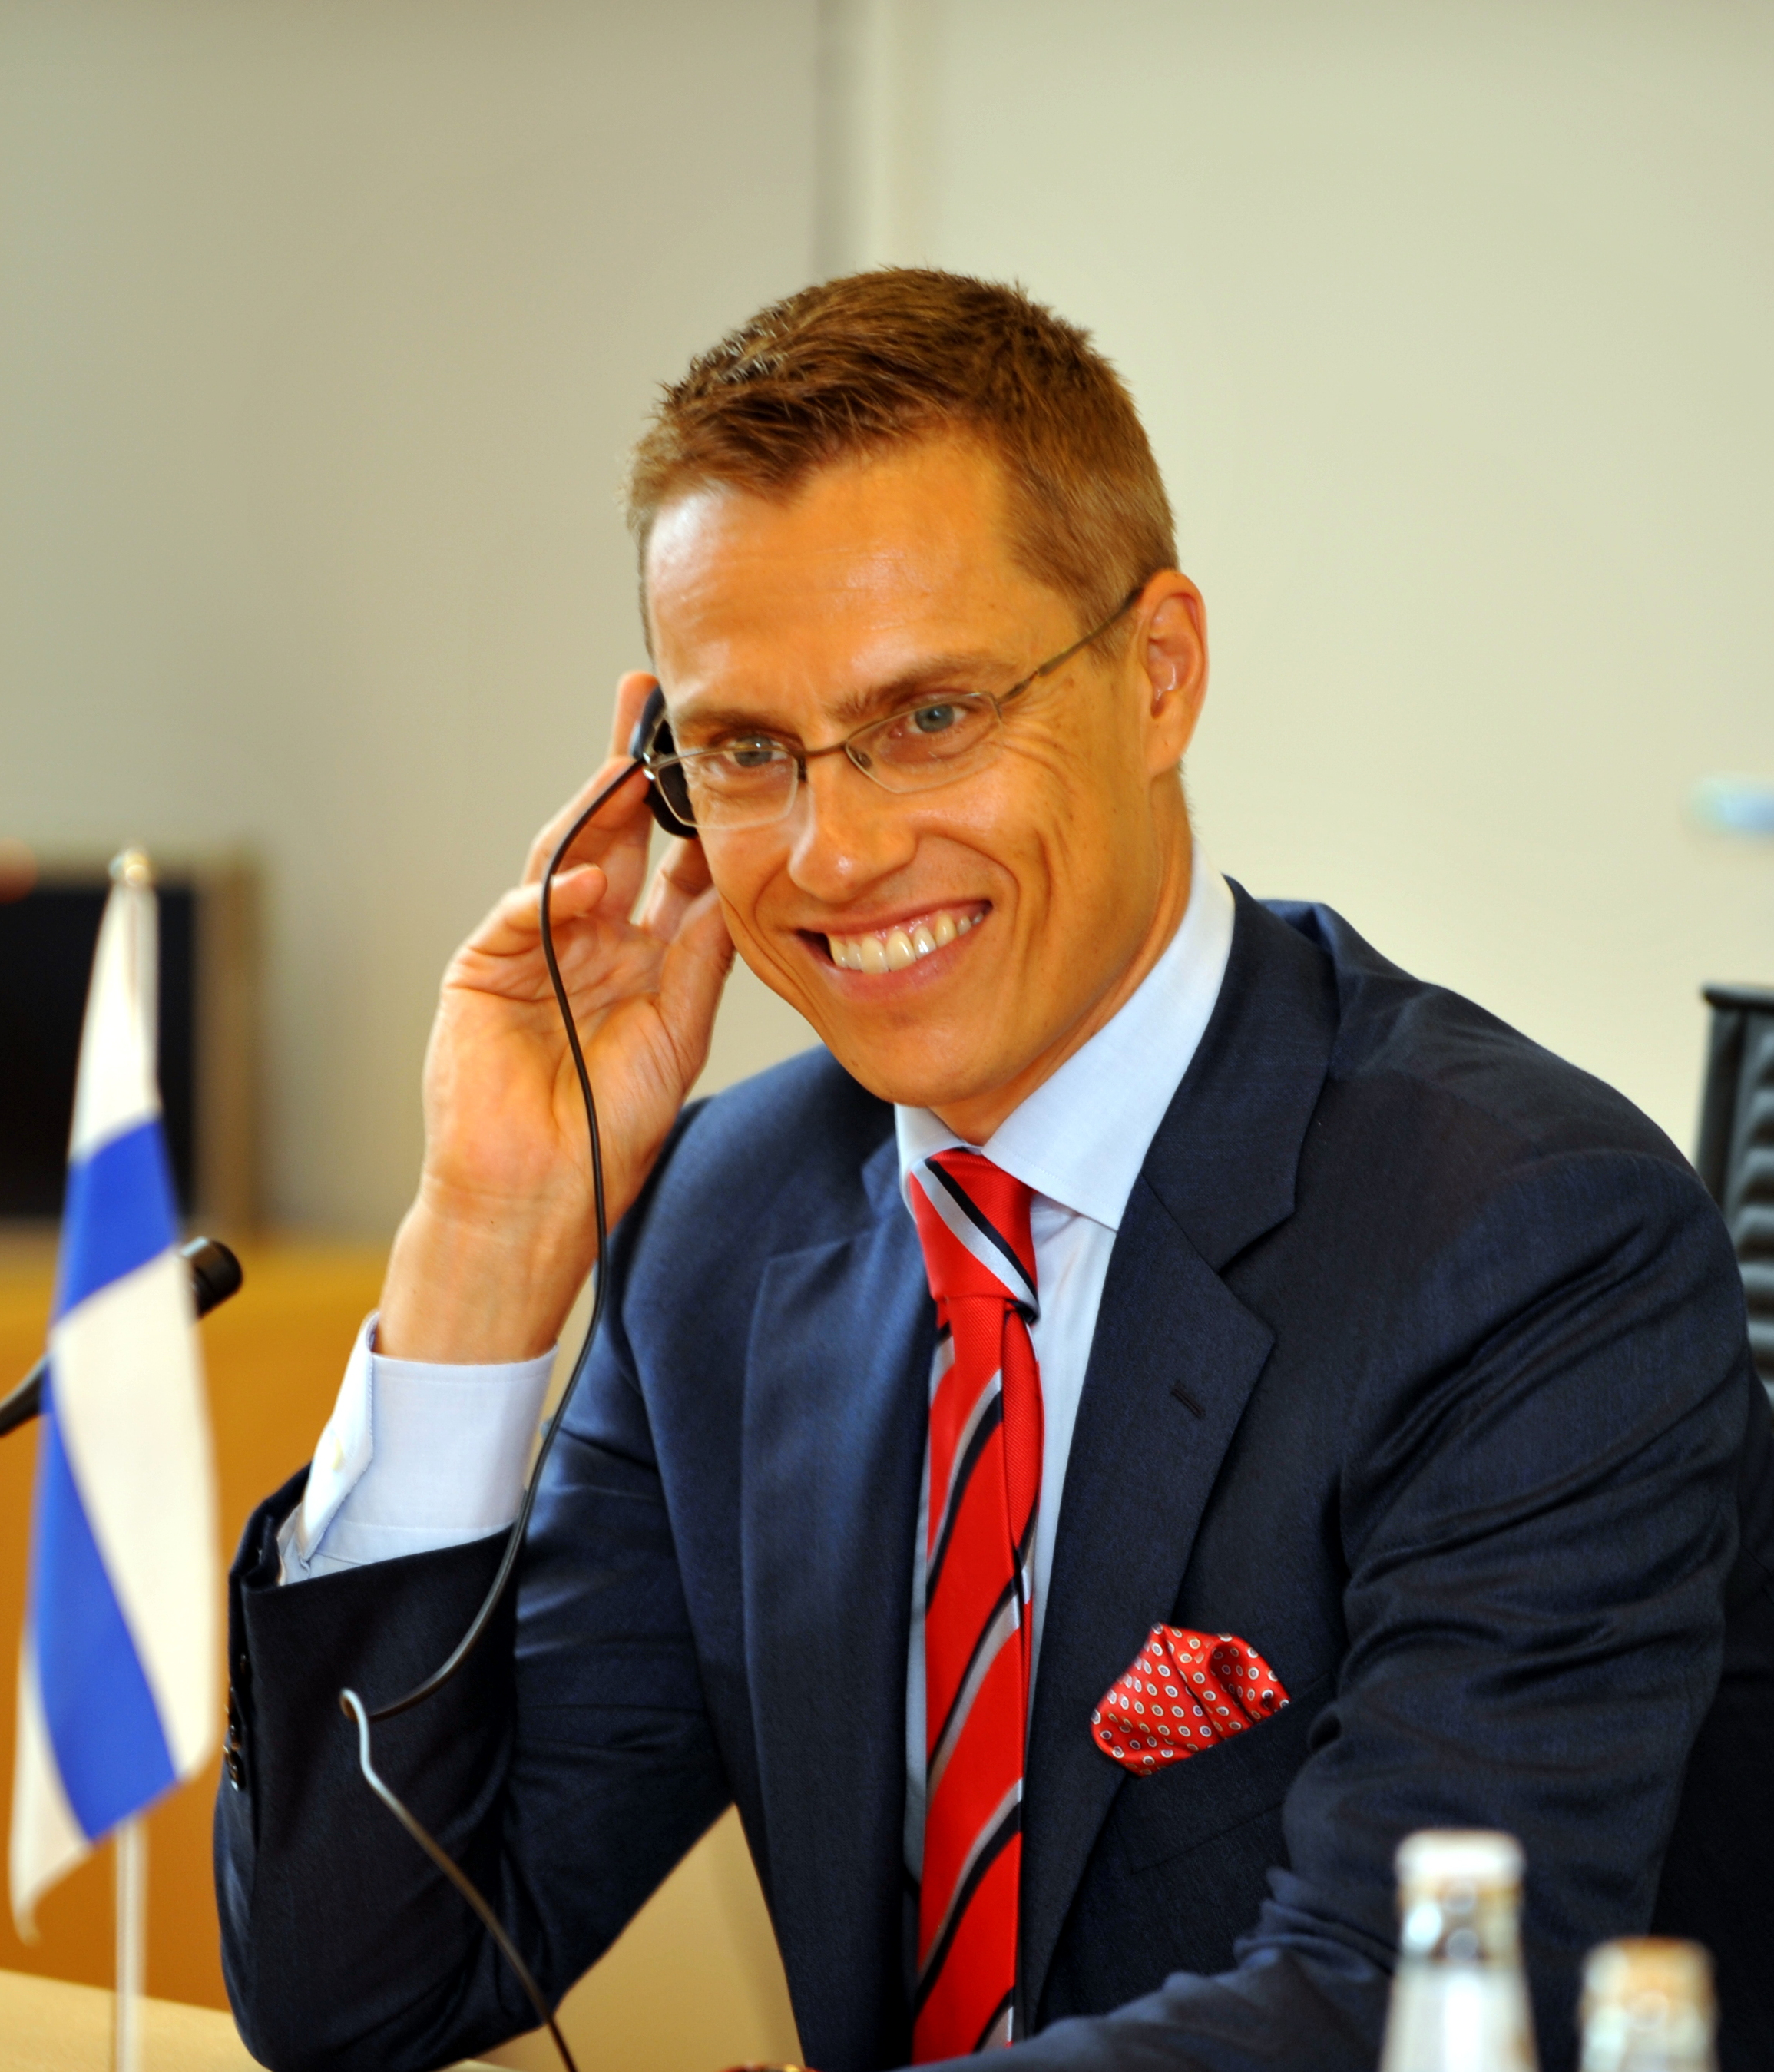 File:Finnish Minister for European Affairs and Foreign Trade Alexander Stubb.jpg - Wikimedia Commons